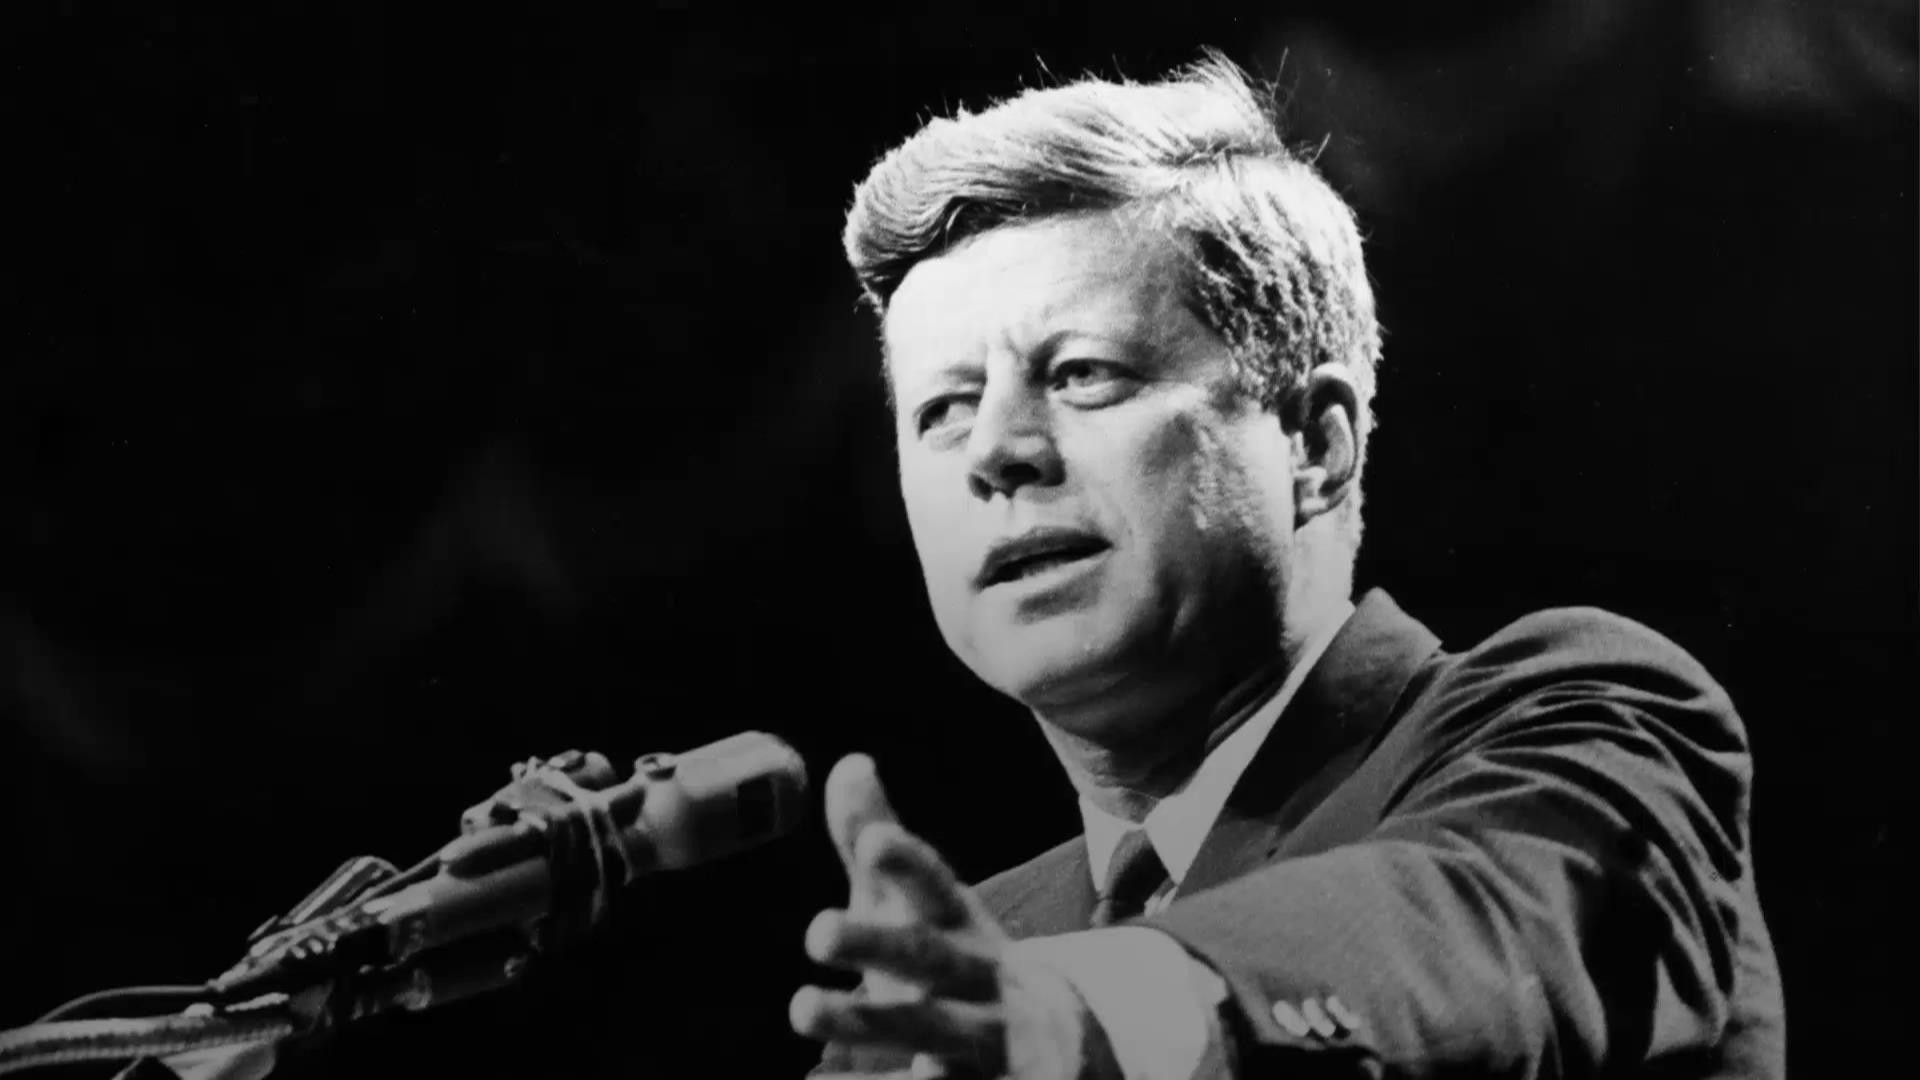 1920x1080 JFK at 100: A look back at the life of President John F. Kennedy